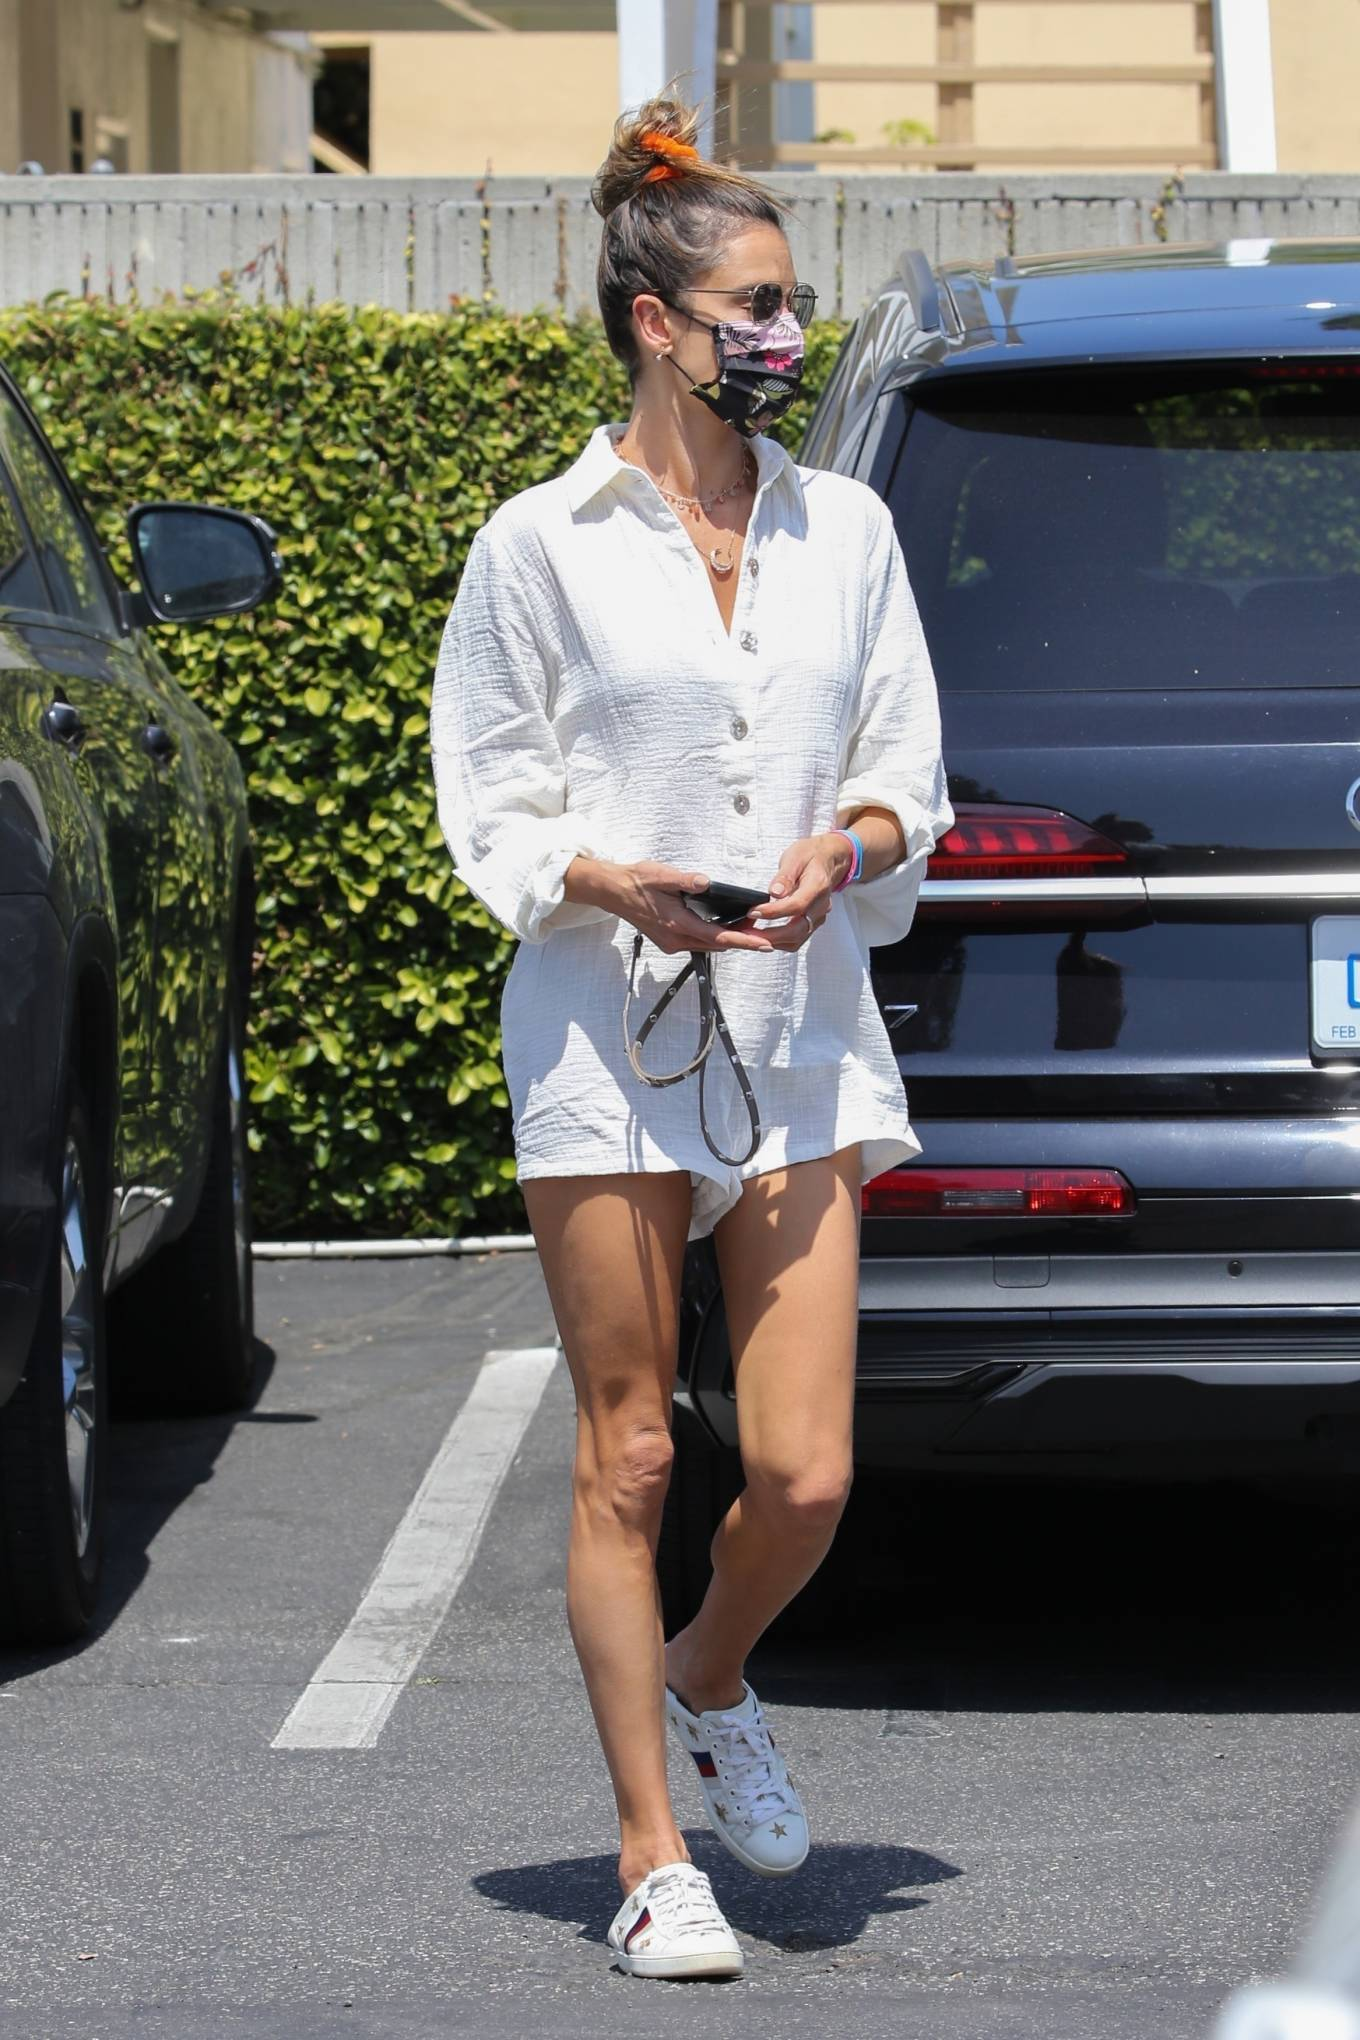 Alessandra Ambrosio donning embroidered white Gucci lace-up sneakers with flat heel and brand logo